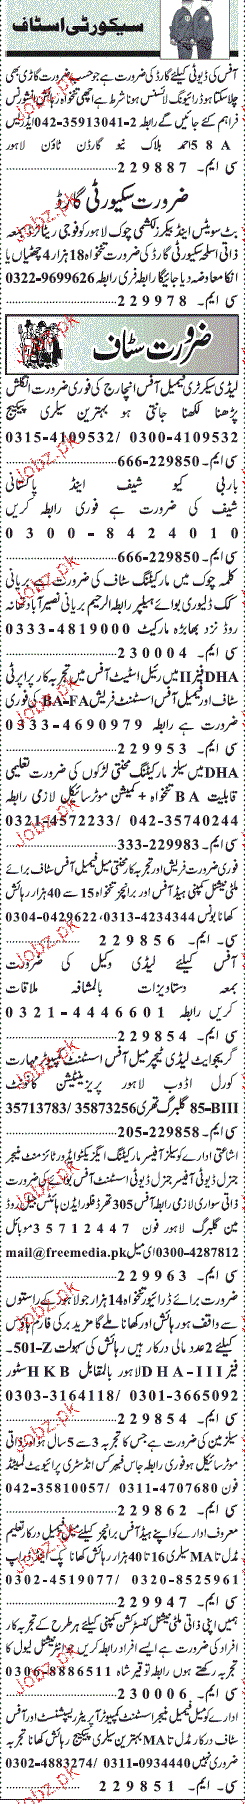 Lady Teachers, Office Assistants, Executives Job Opportunity